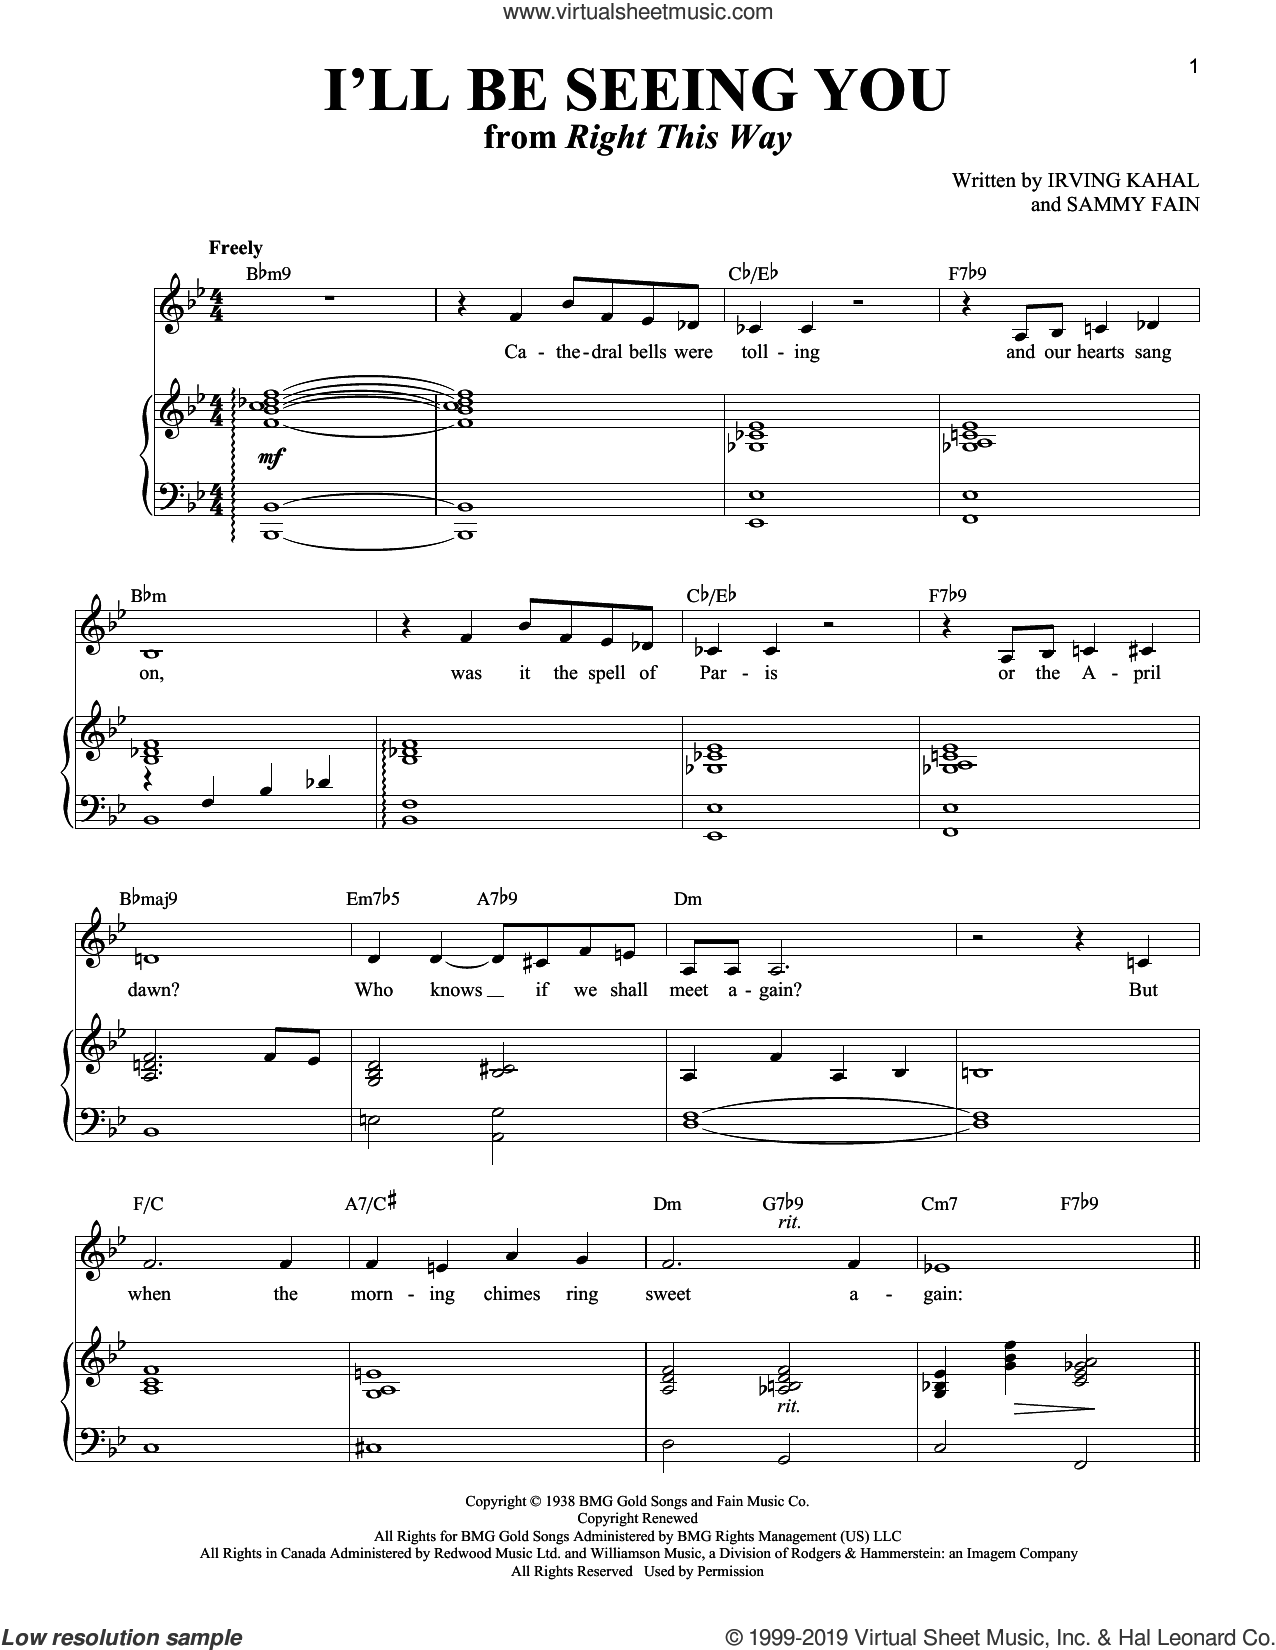 I'll Be Seeing You sheet music for voice and piano by Irving Kahal, Richard Walters and Sammy Fain, intermediate skill level